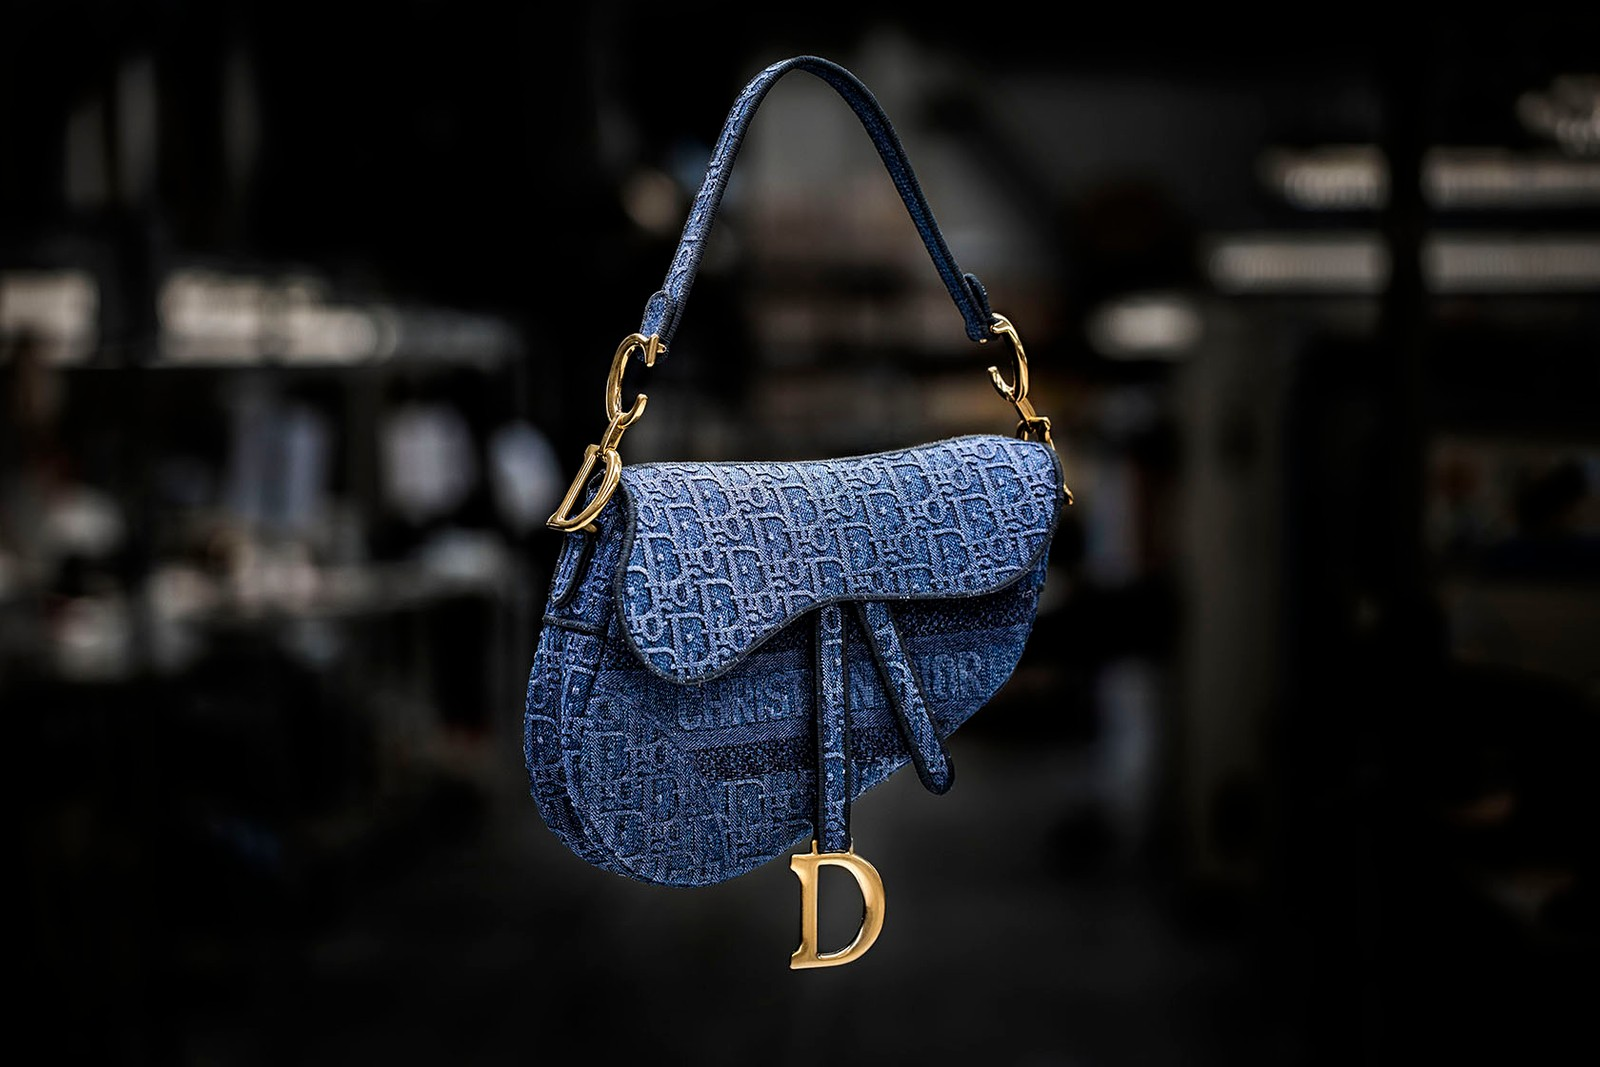 dior saddle bag how its made embroidered denim monogram blue stitching gold hardware